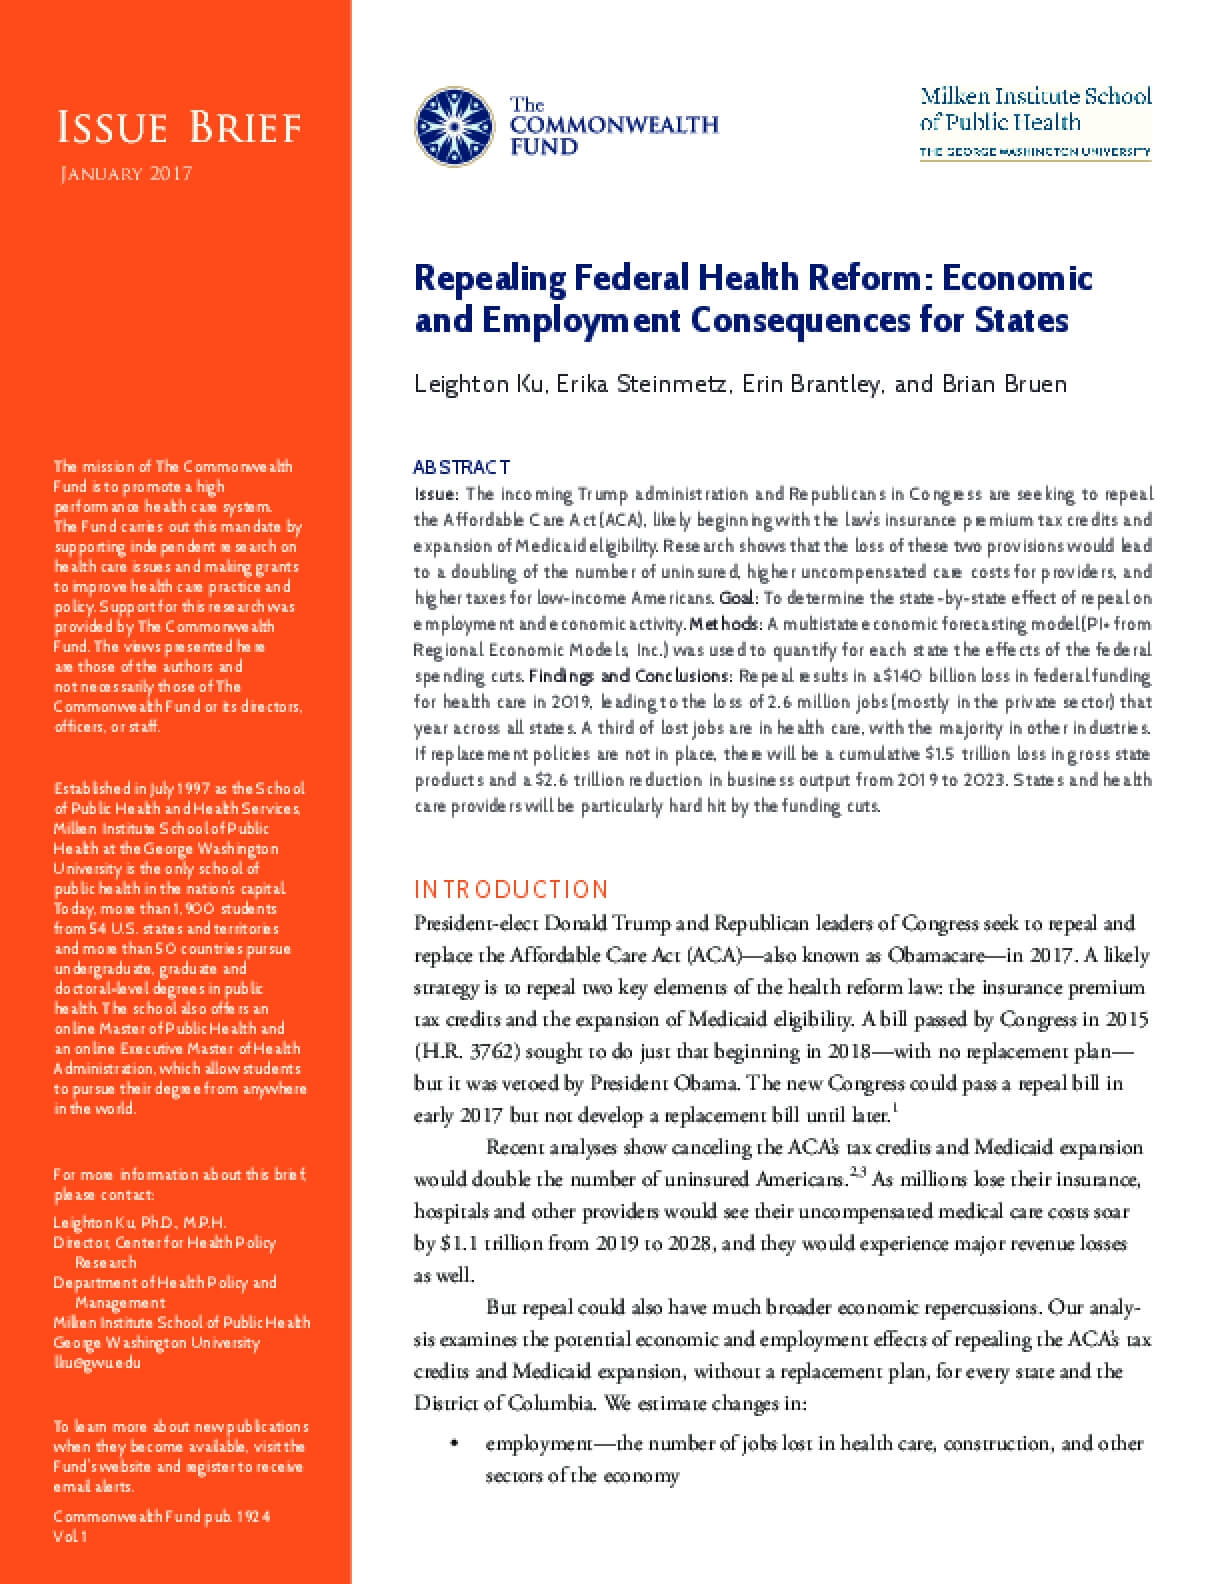 Repealing Federal Health Reform: Economic and Employment Consequences for States